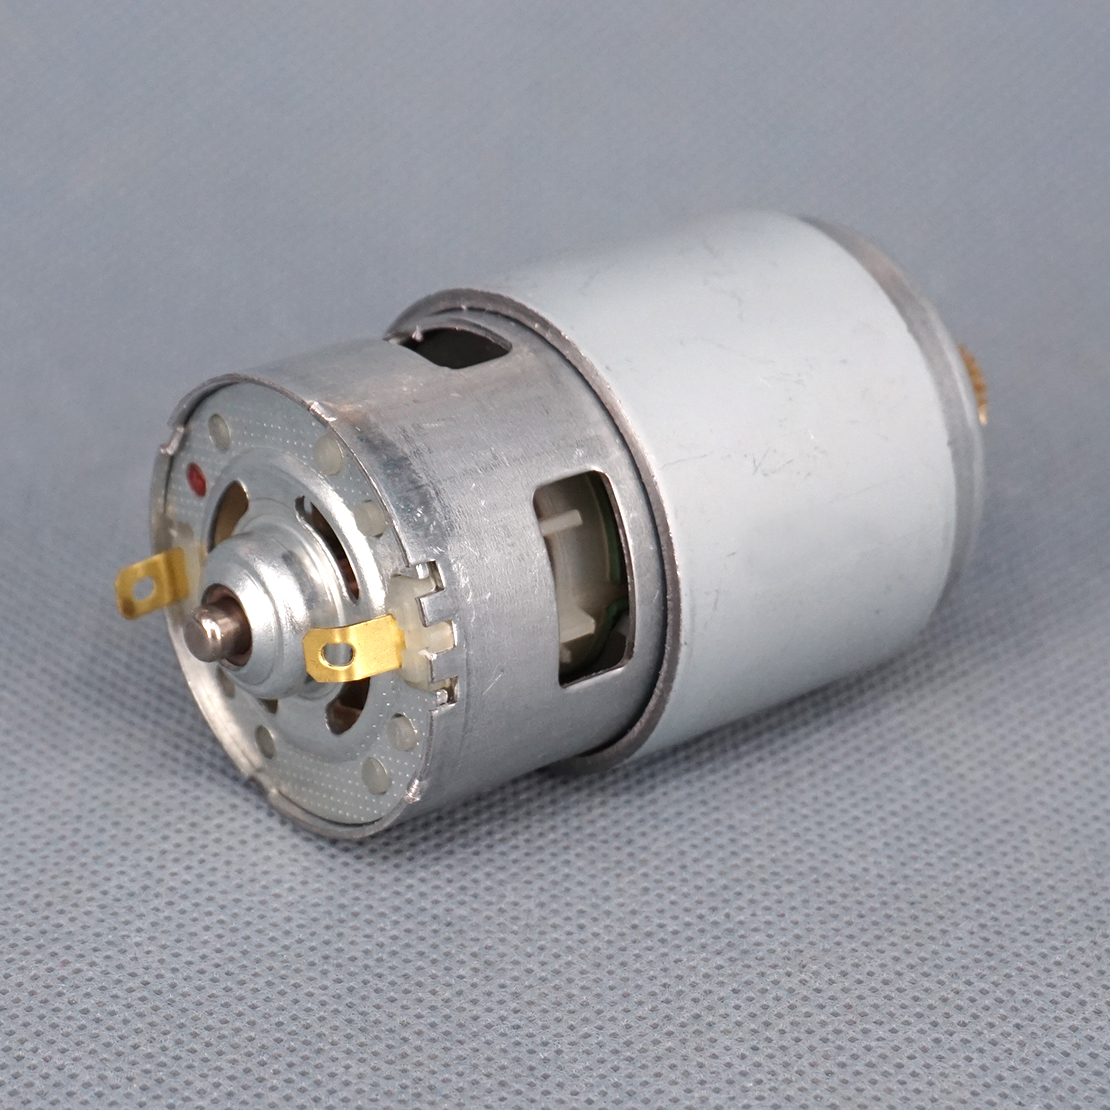 Parking Brake Actuator Handbrake Module Motor For Bmw X5